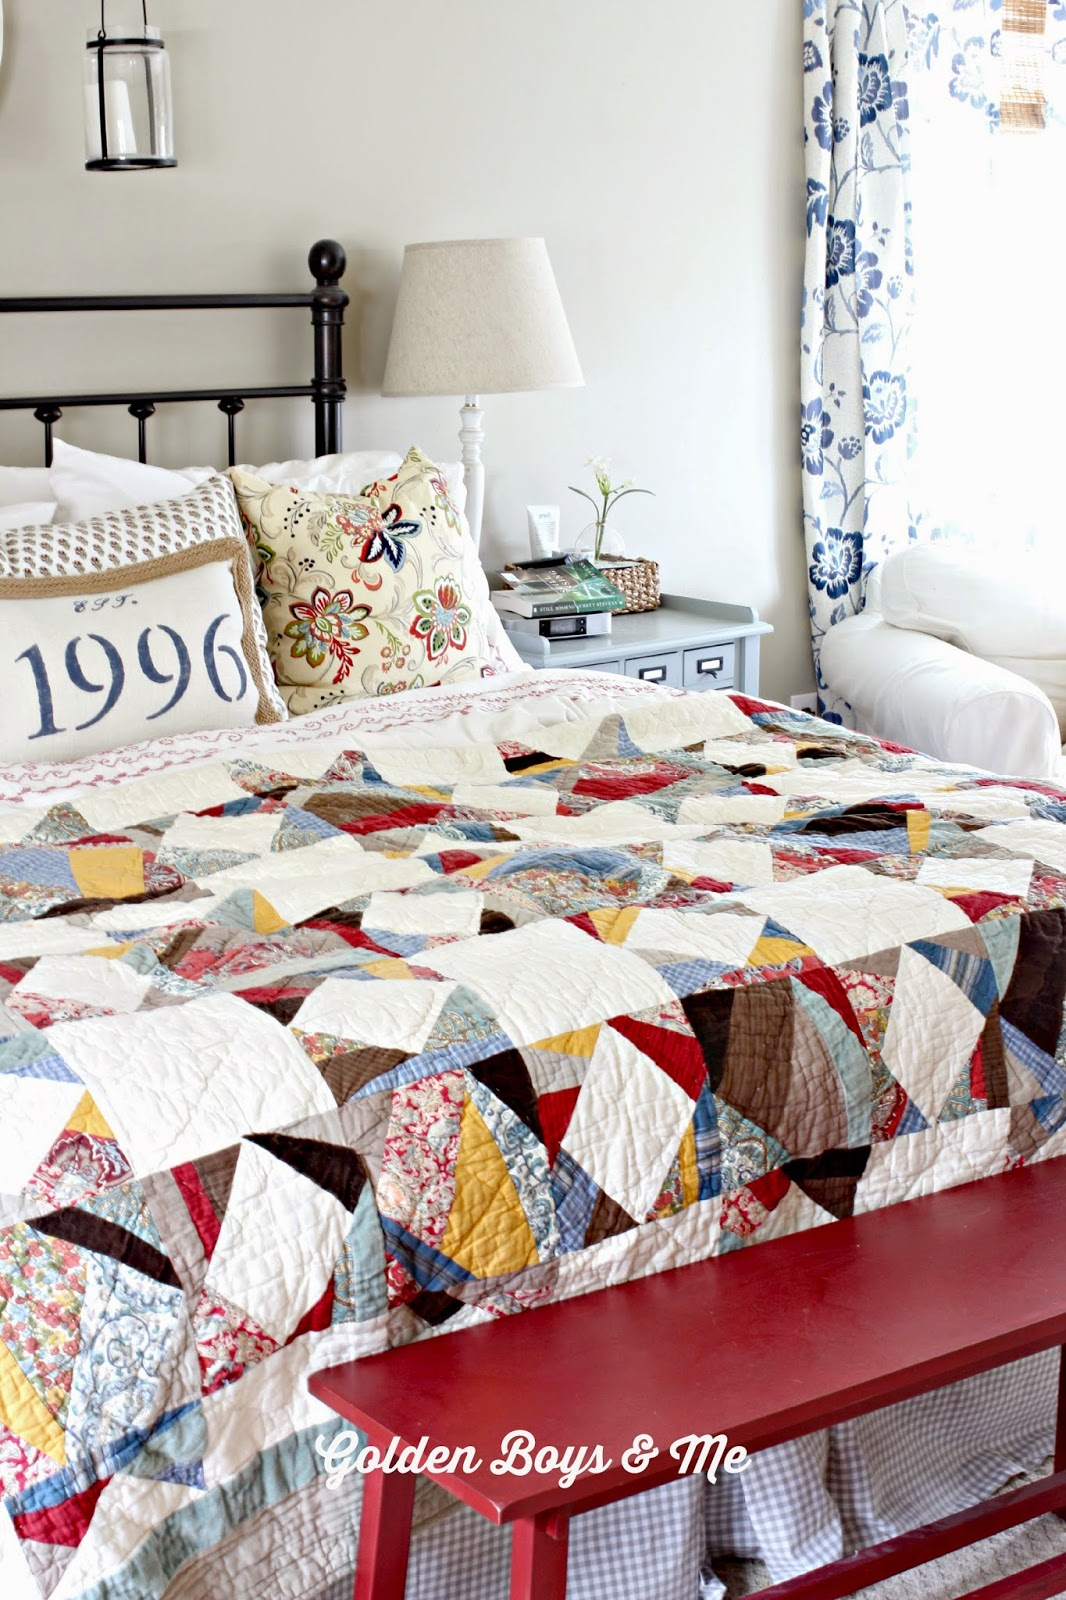 Pottery Barn quilt in Master Bedroom- www.goldenboysandme.com